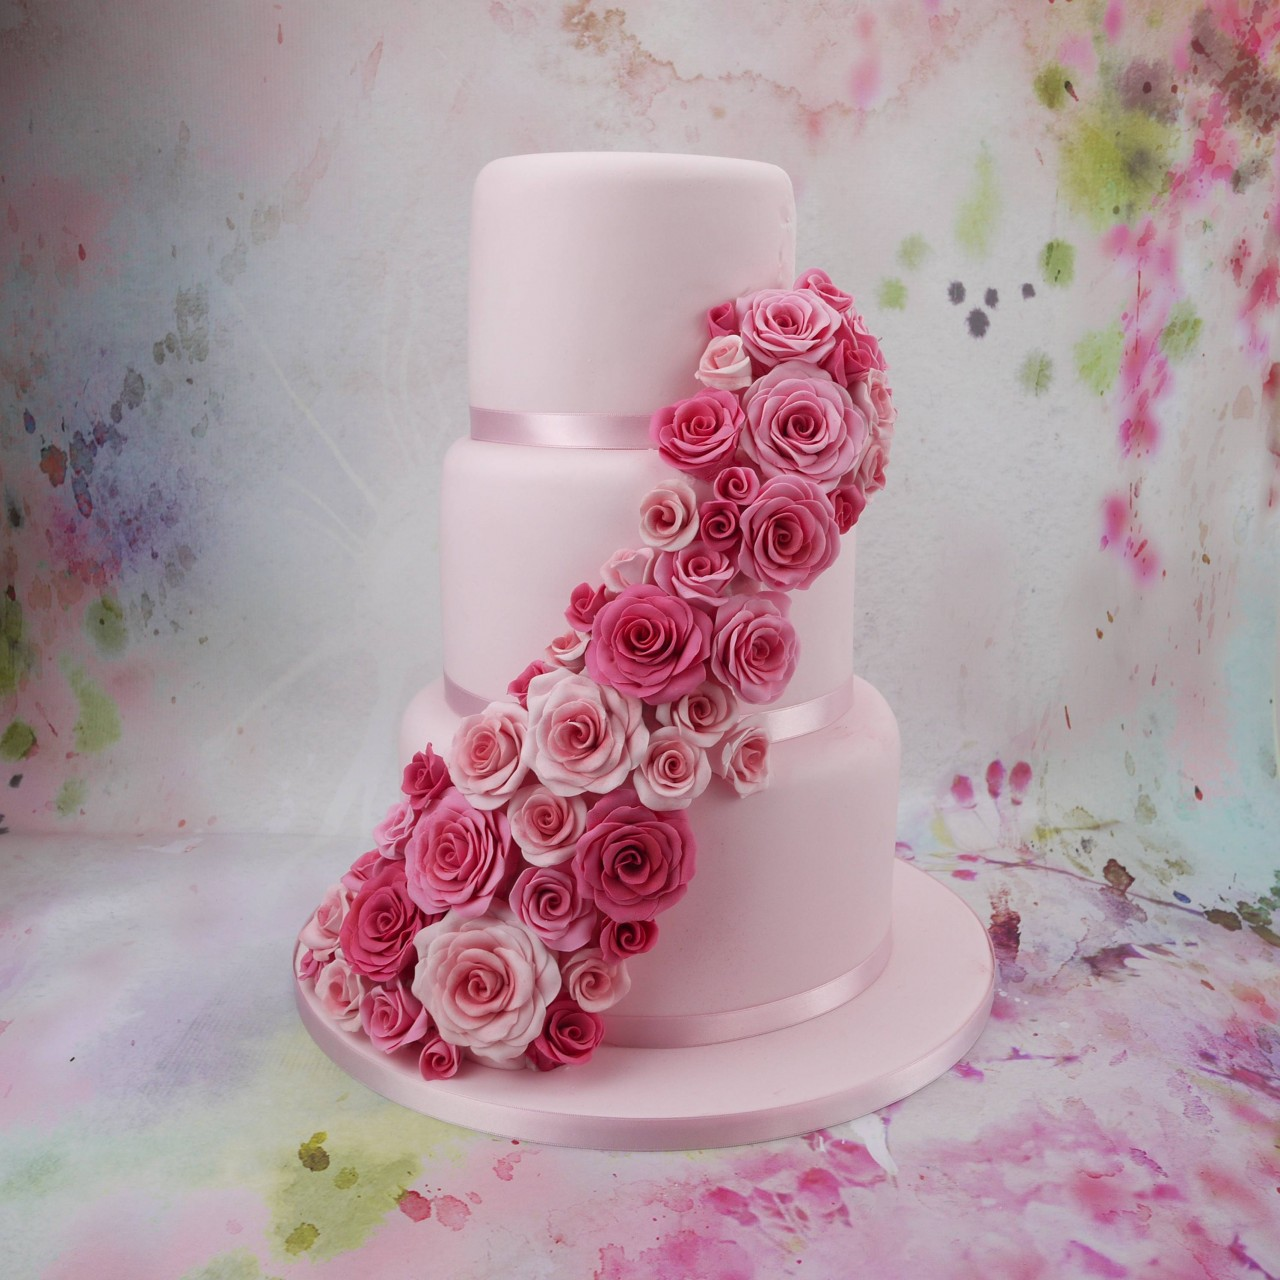 Cutter Fmm Easiest Rose Cutter Ever Cake Decorating Solutions